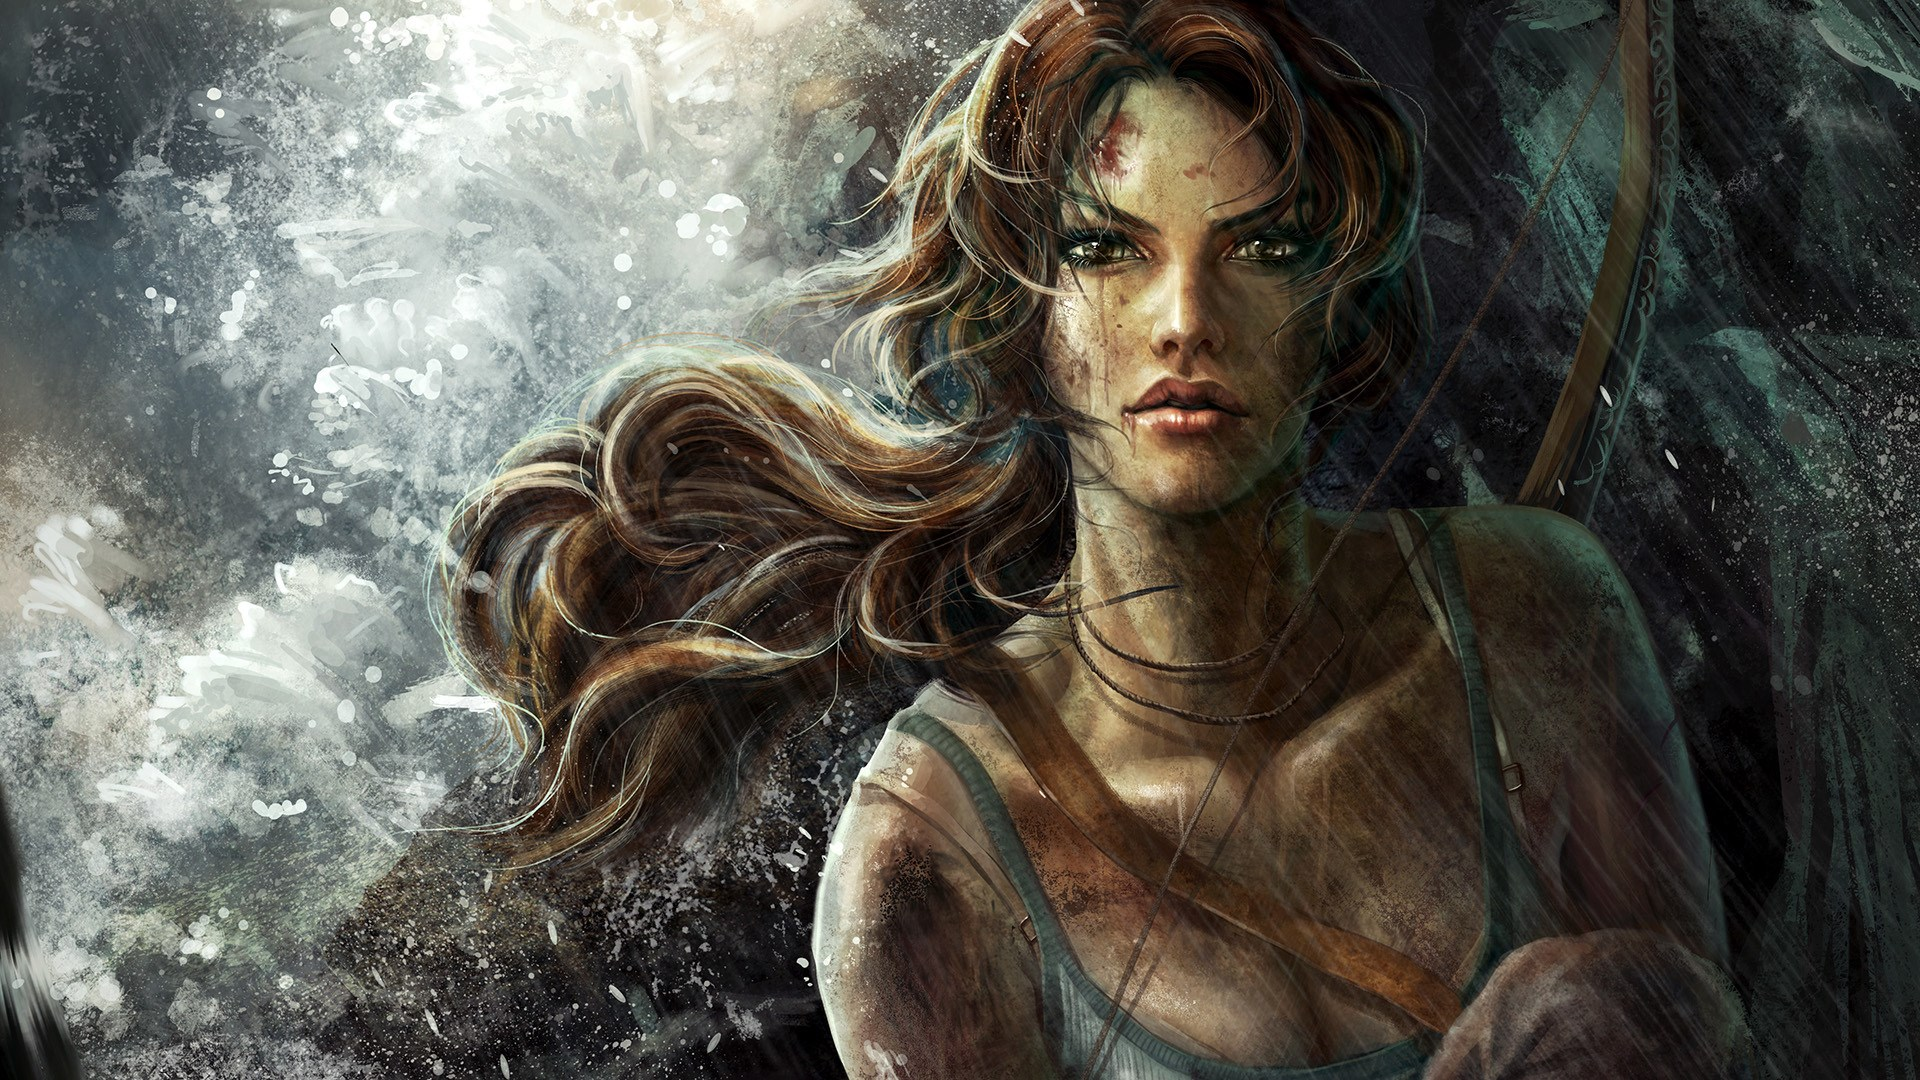 Tomb Raider Lara Croft Game Girl Artwork